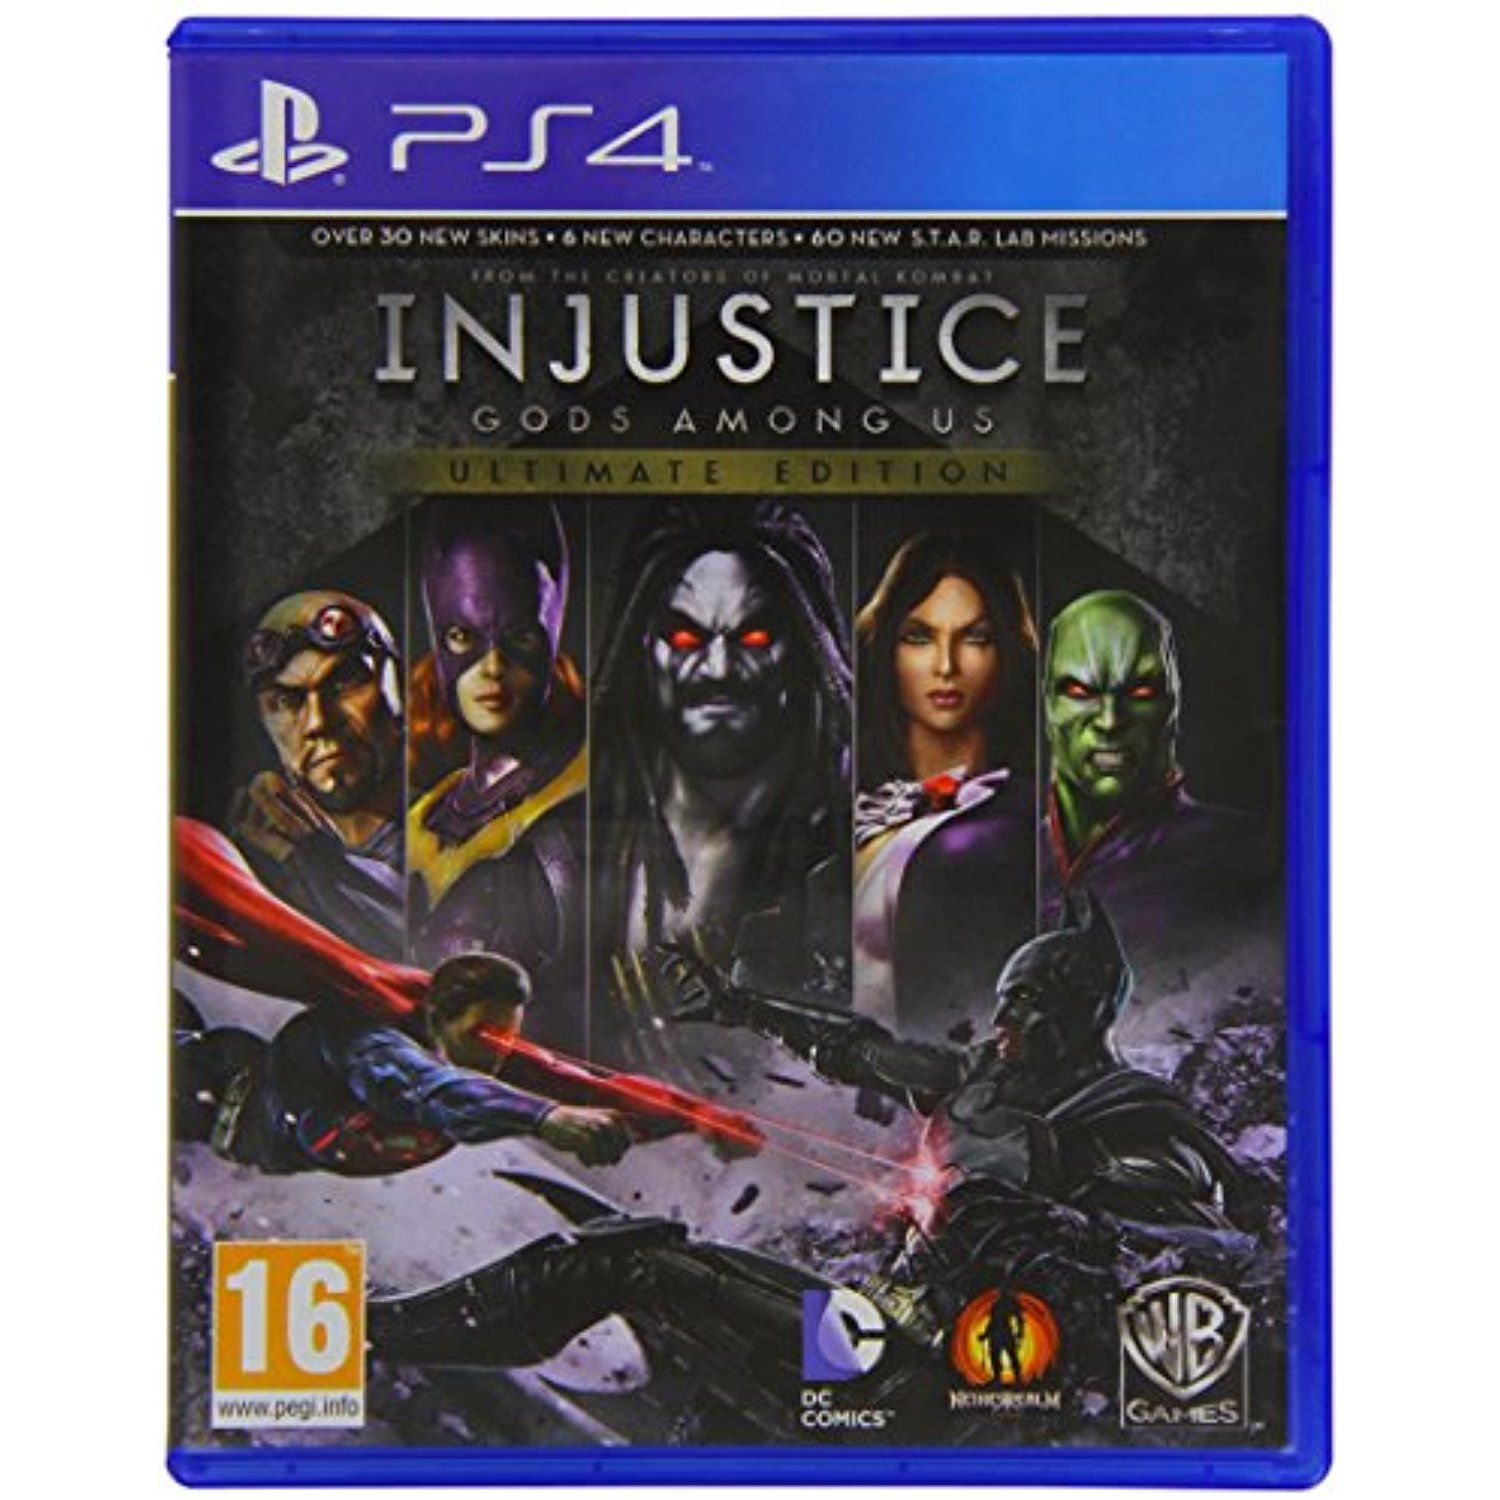 Injustice Gods Among Us Ultimate Edition Review IGN How awesome